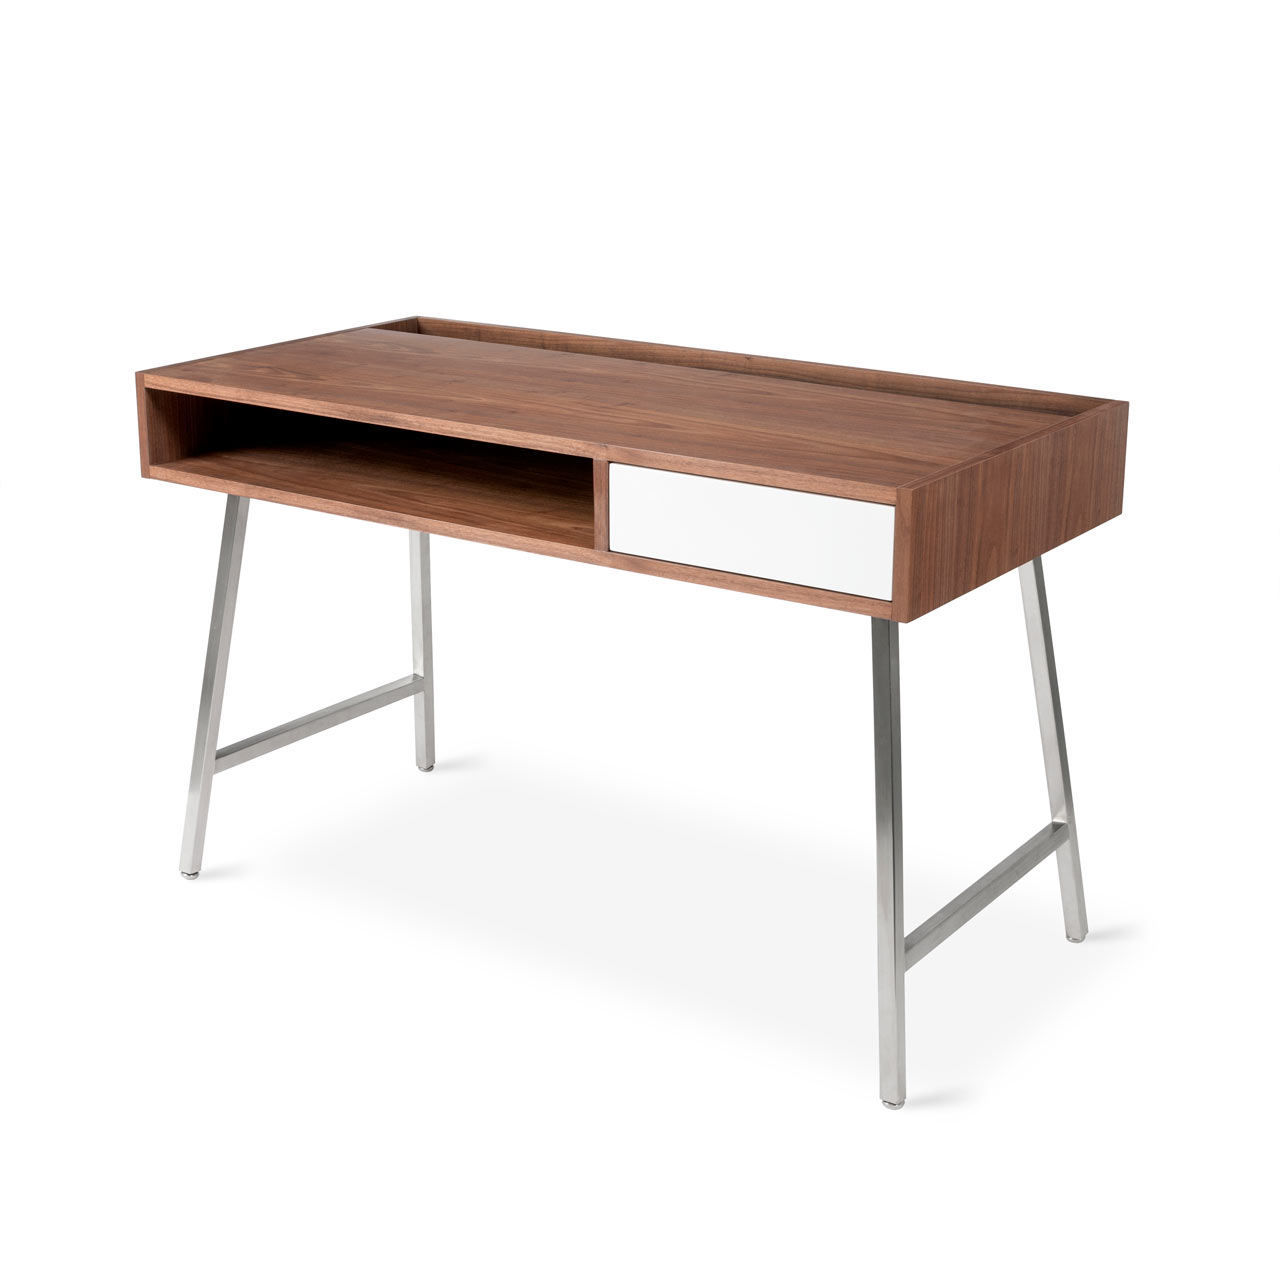 Gus-Modern-2-Junction-Desk